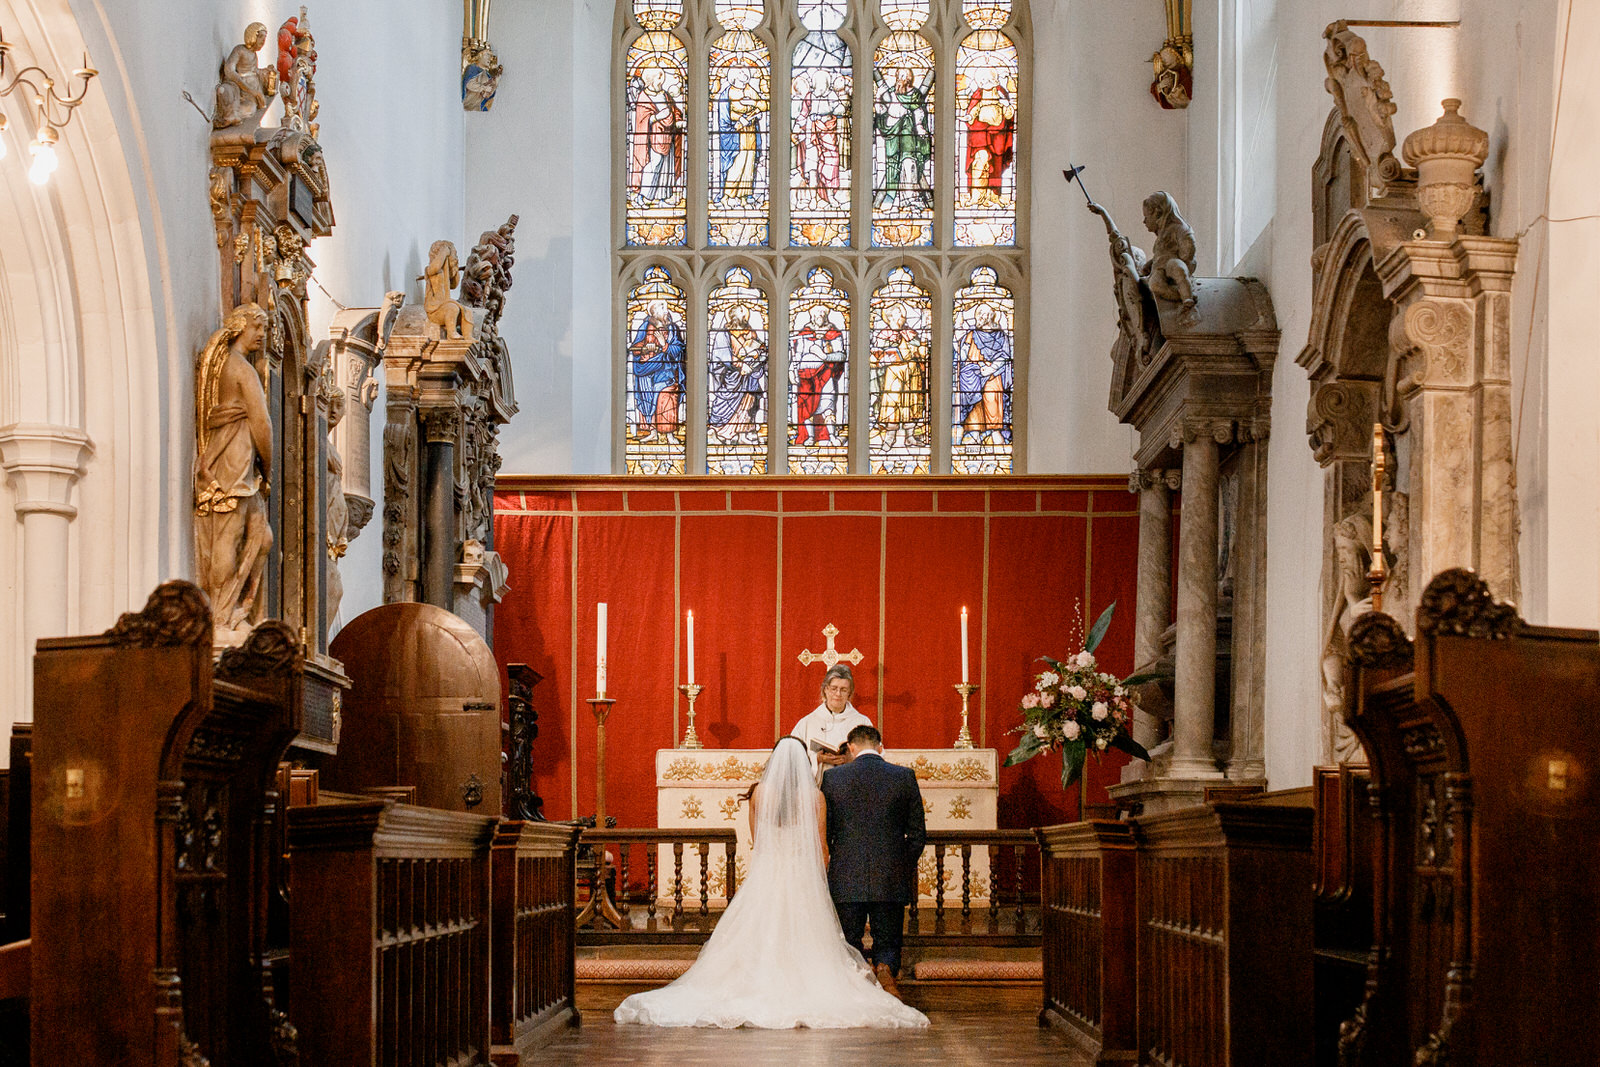 bride and groom kneeling in church